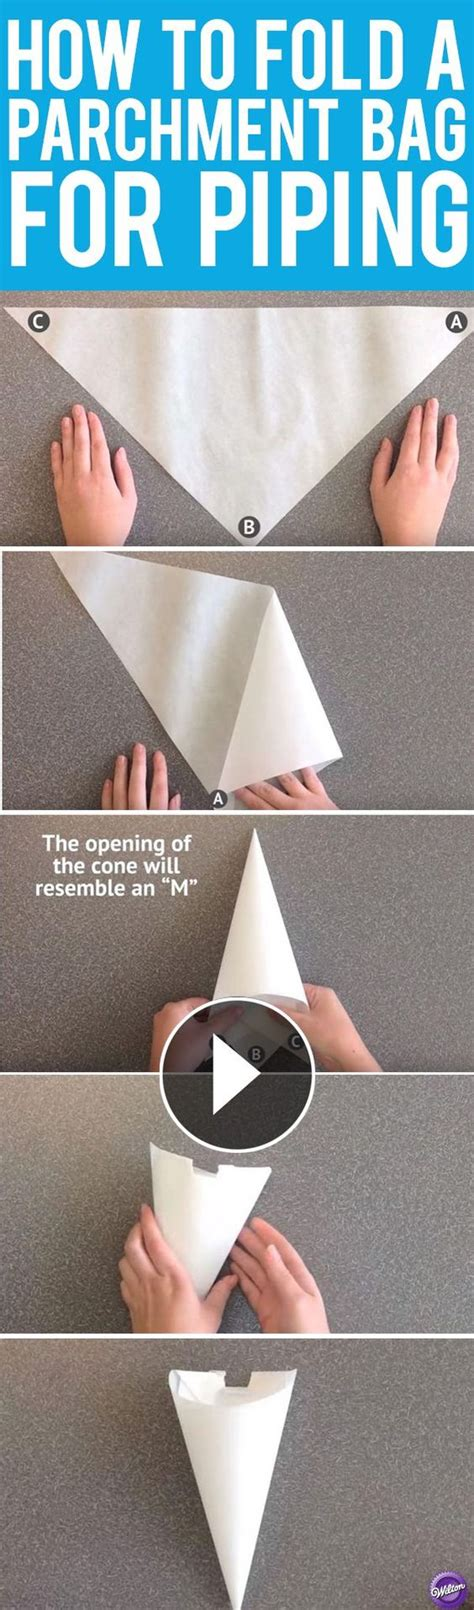 Make A Piping Bag Out Of Baking Paper - learn how to make a piping bag out of parchment paper